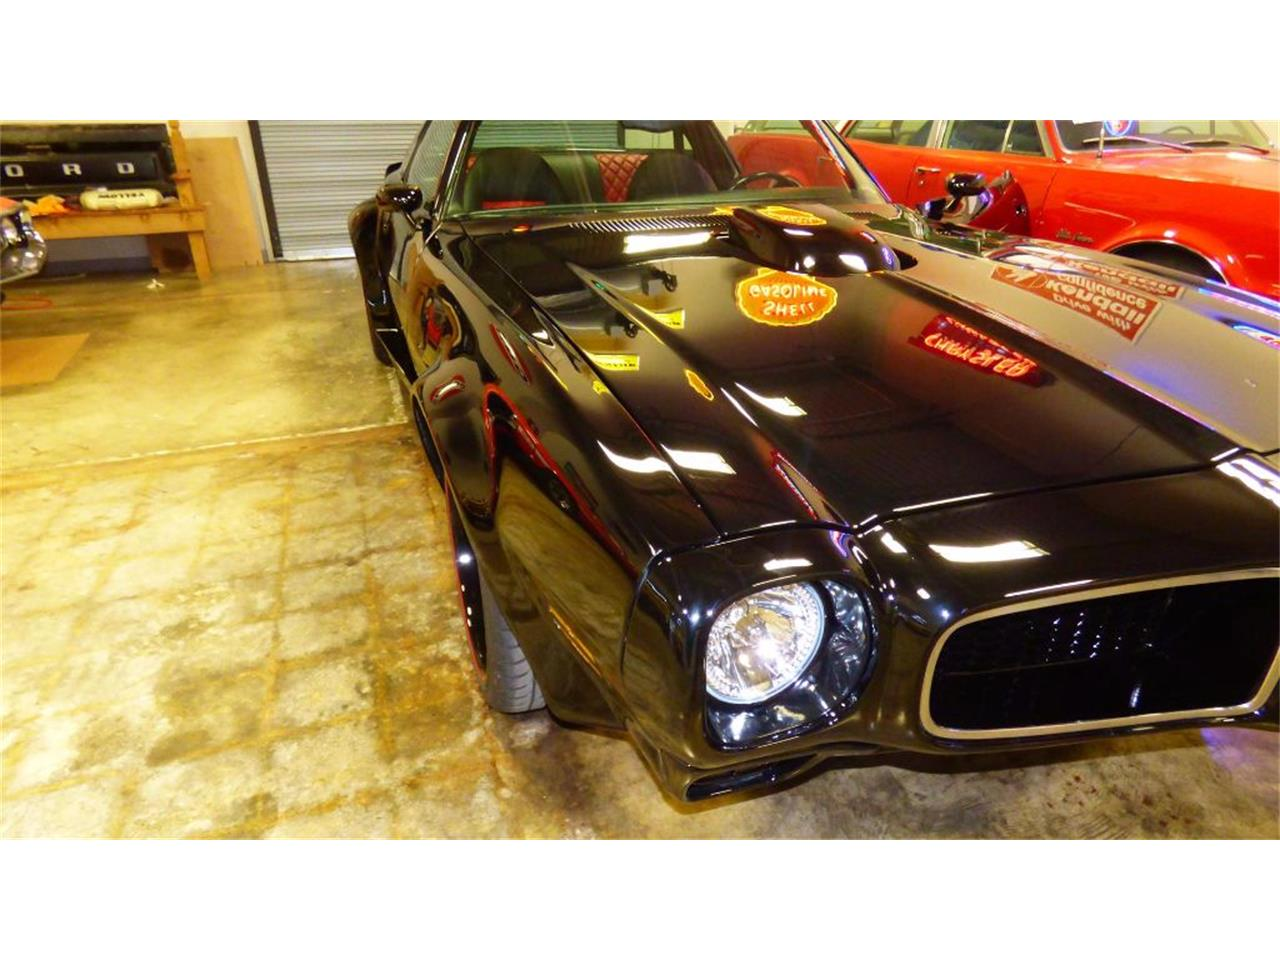 Large Picture of '81 Pontiac Firebird Trans Am located in Atlanta Georgia Auction Vehicle Offered by Cruisers Specialty Autos - E5CK